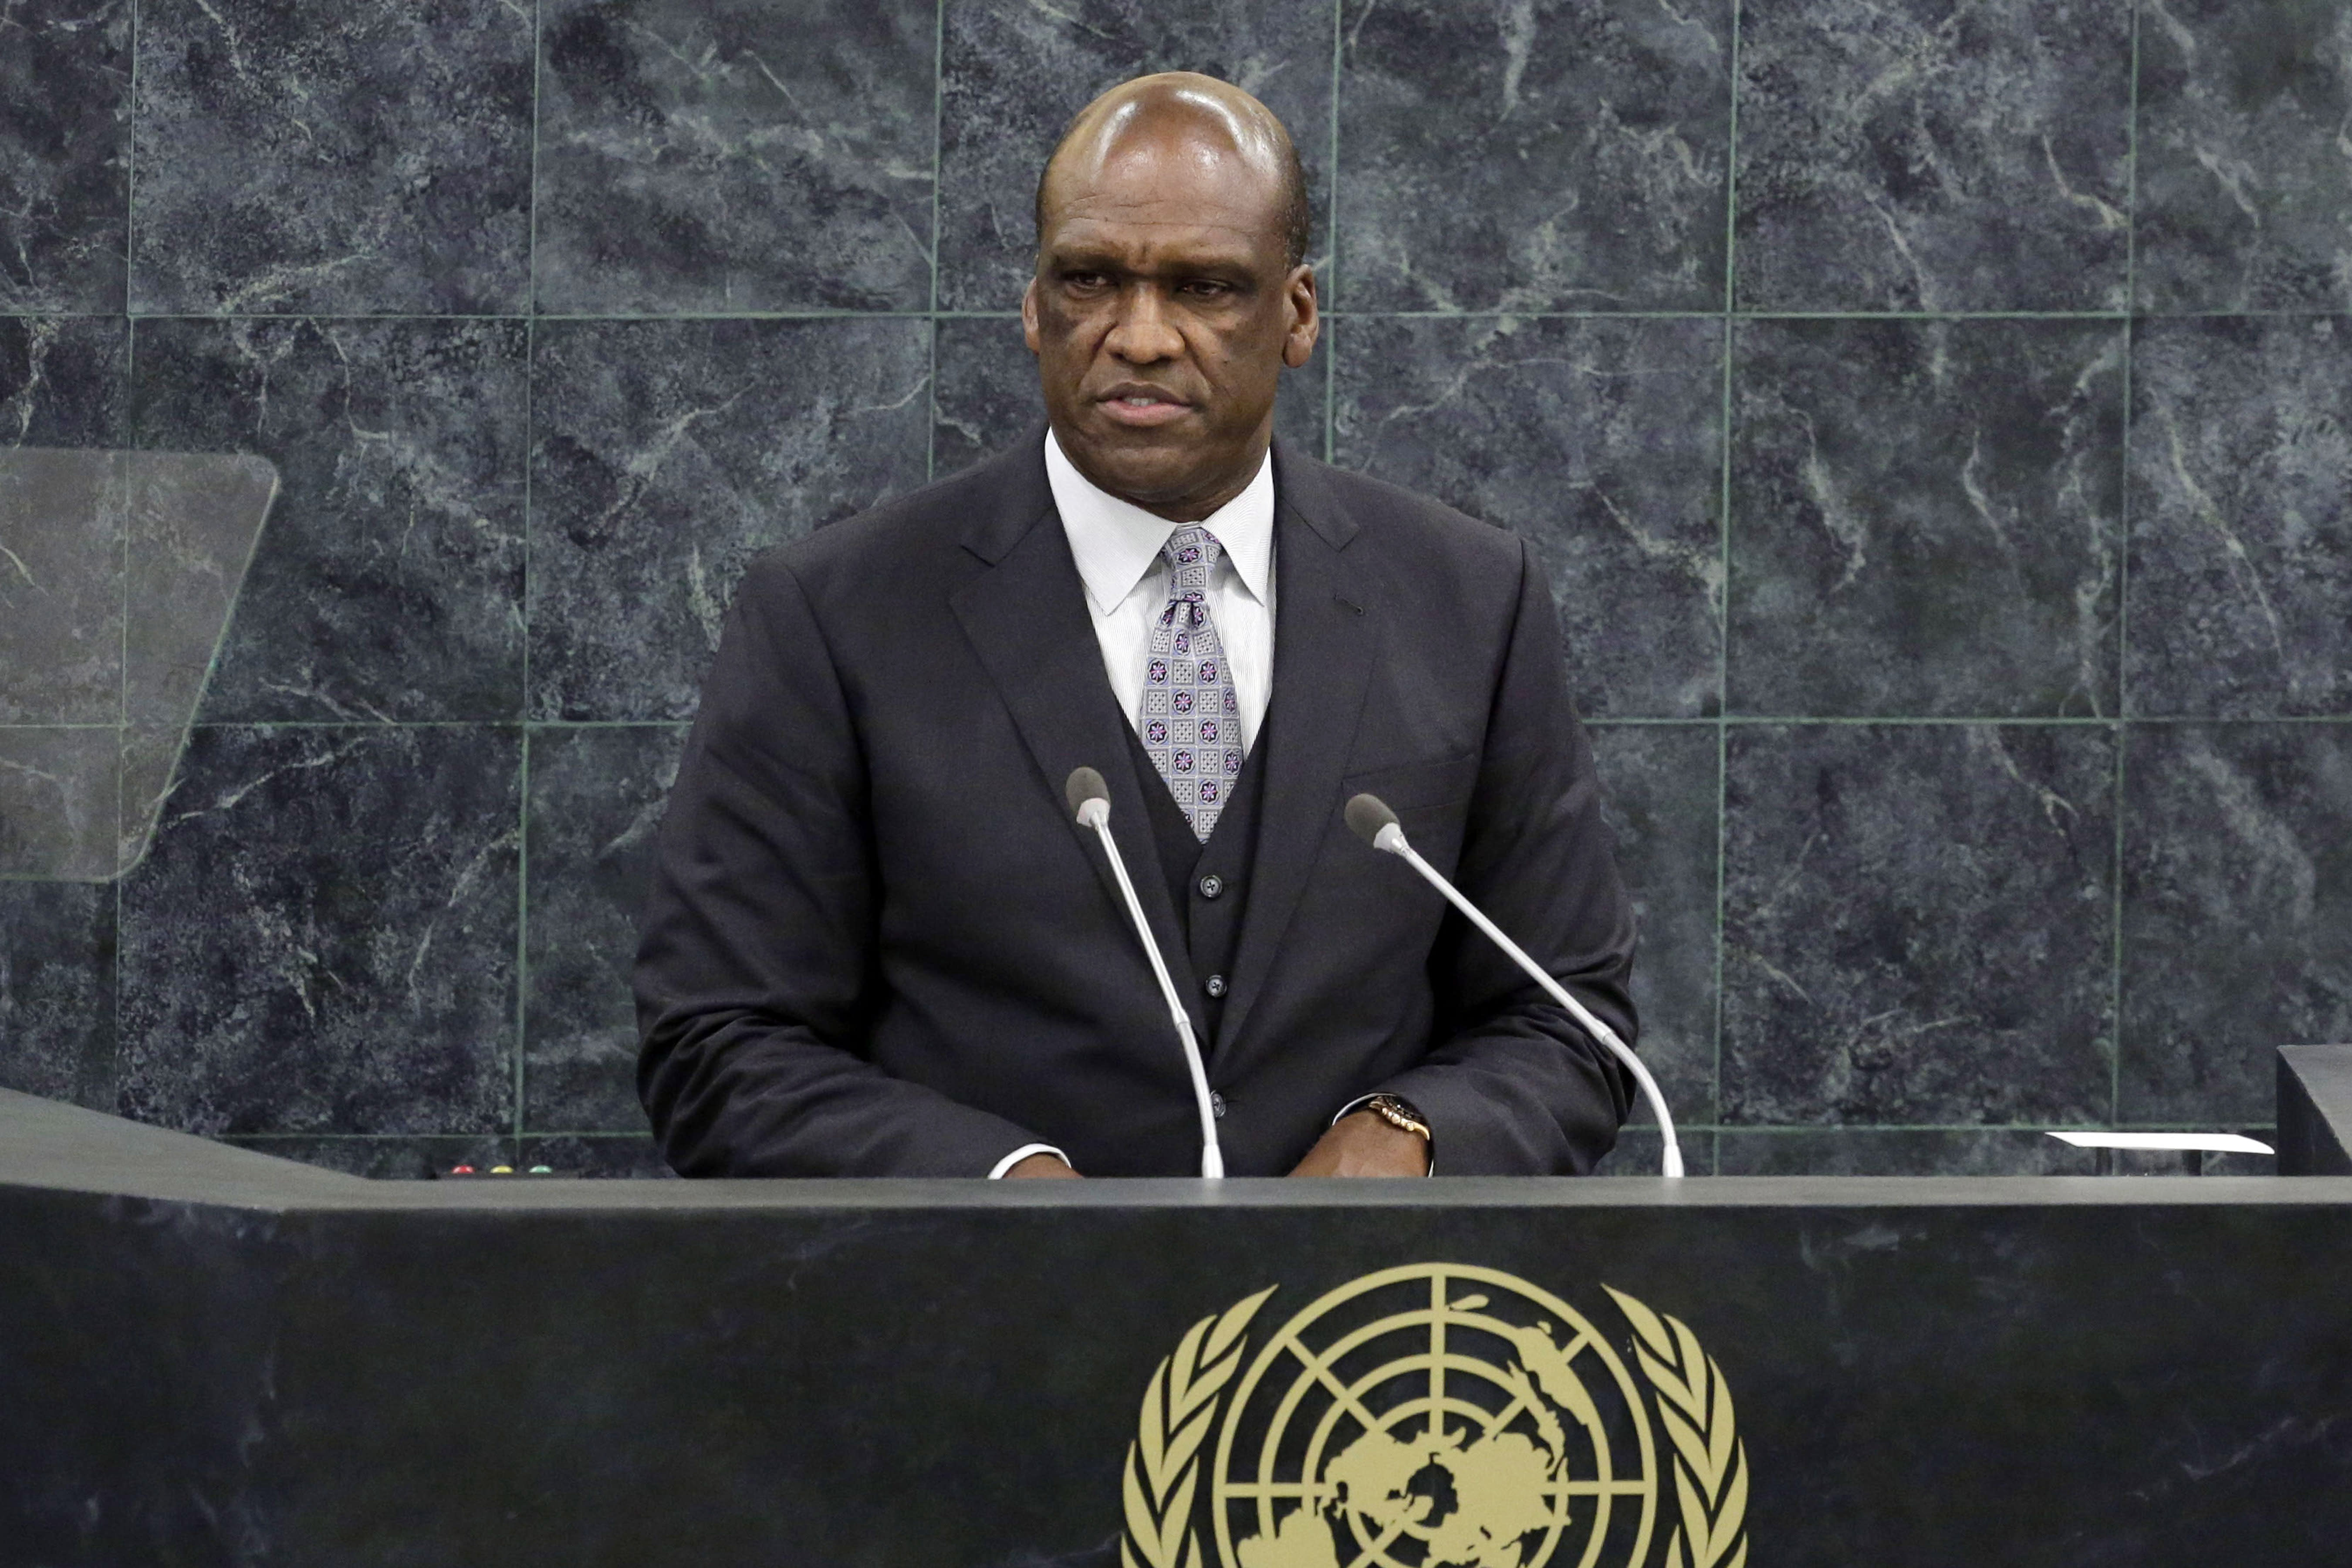 The Latest: UN defends self after charges against ex-GA head